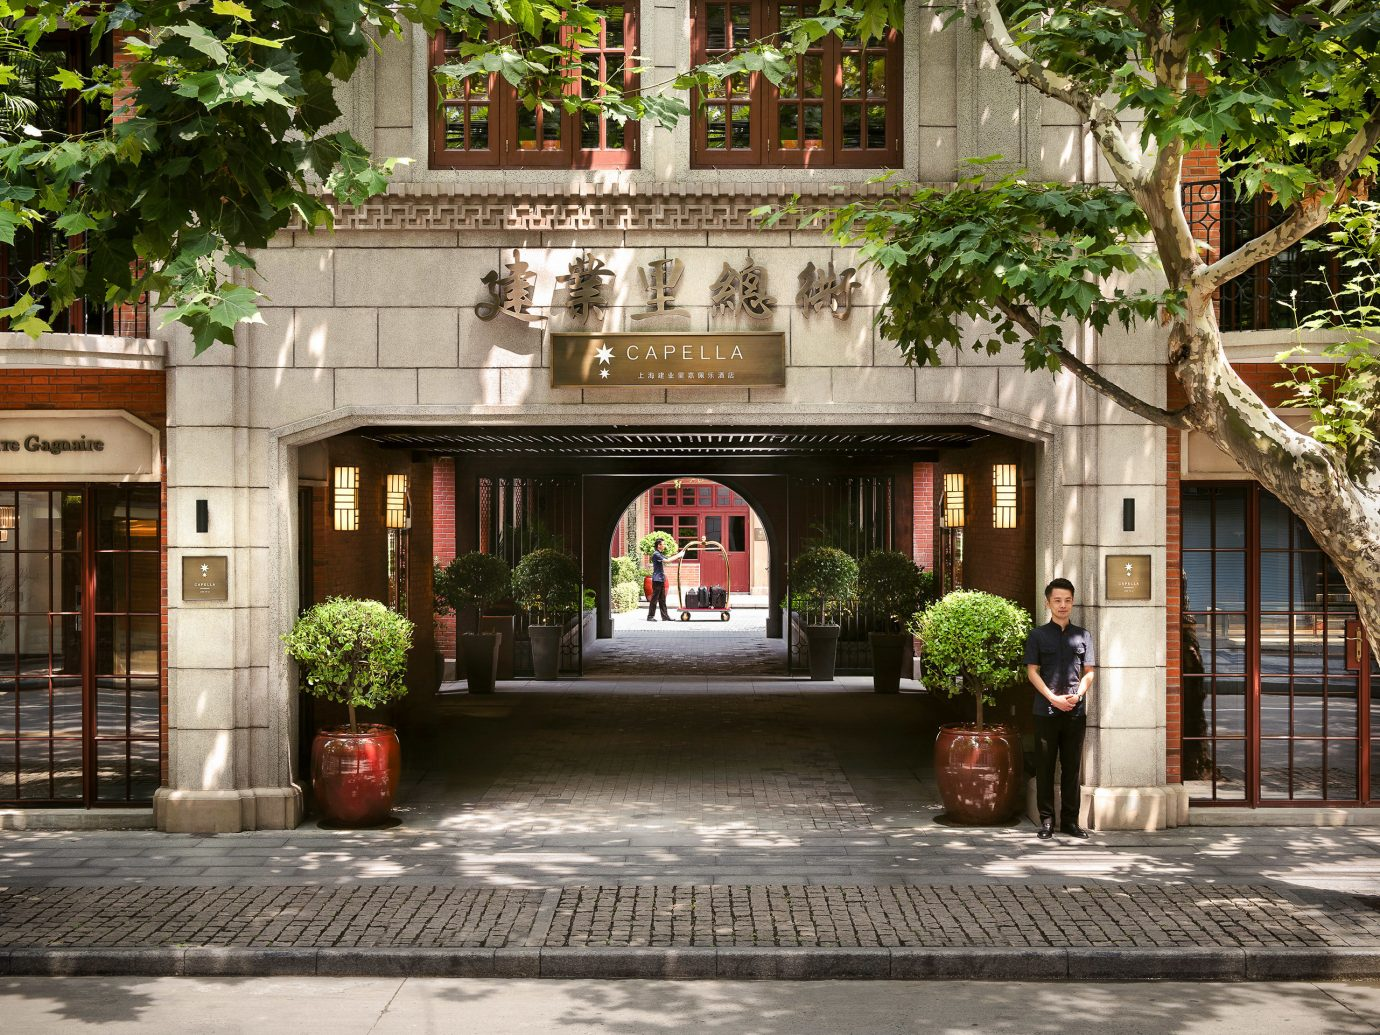 Boutique Hotels Luxury Travel tree outdoor Courtyard real estate facade house stone